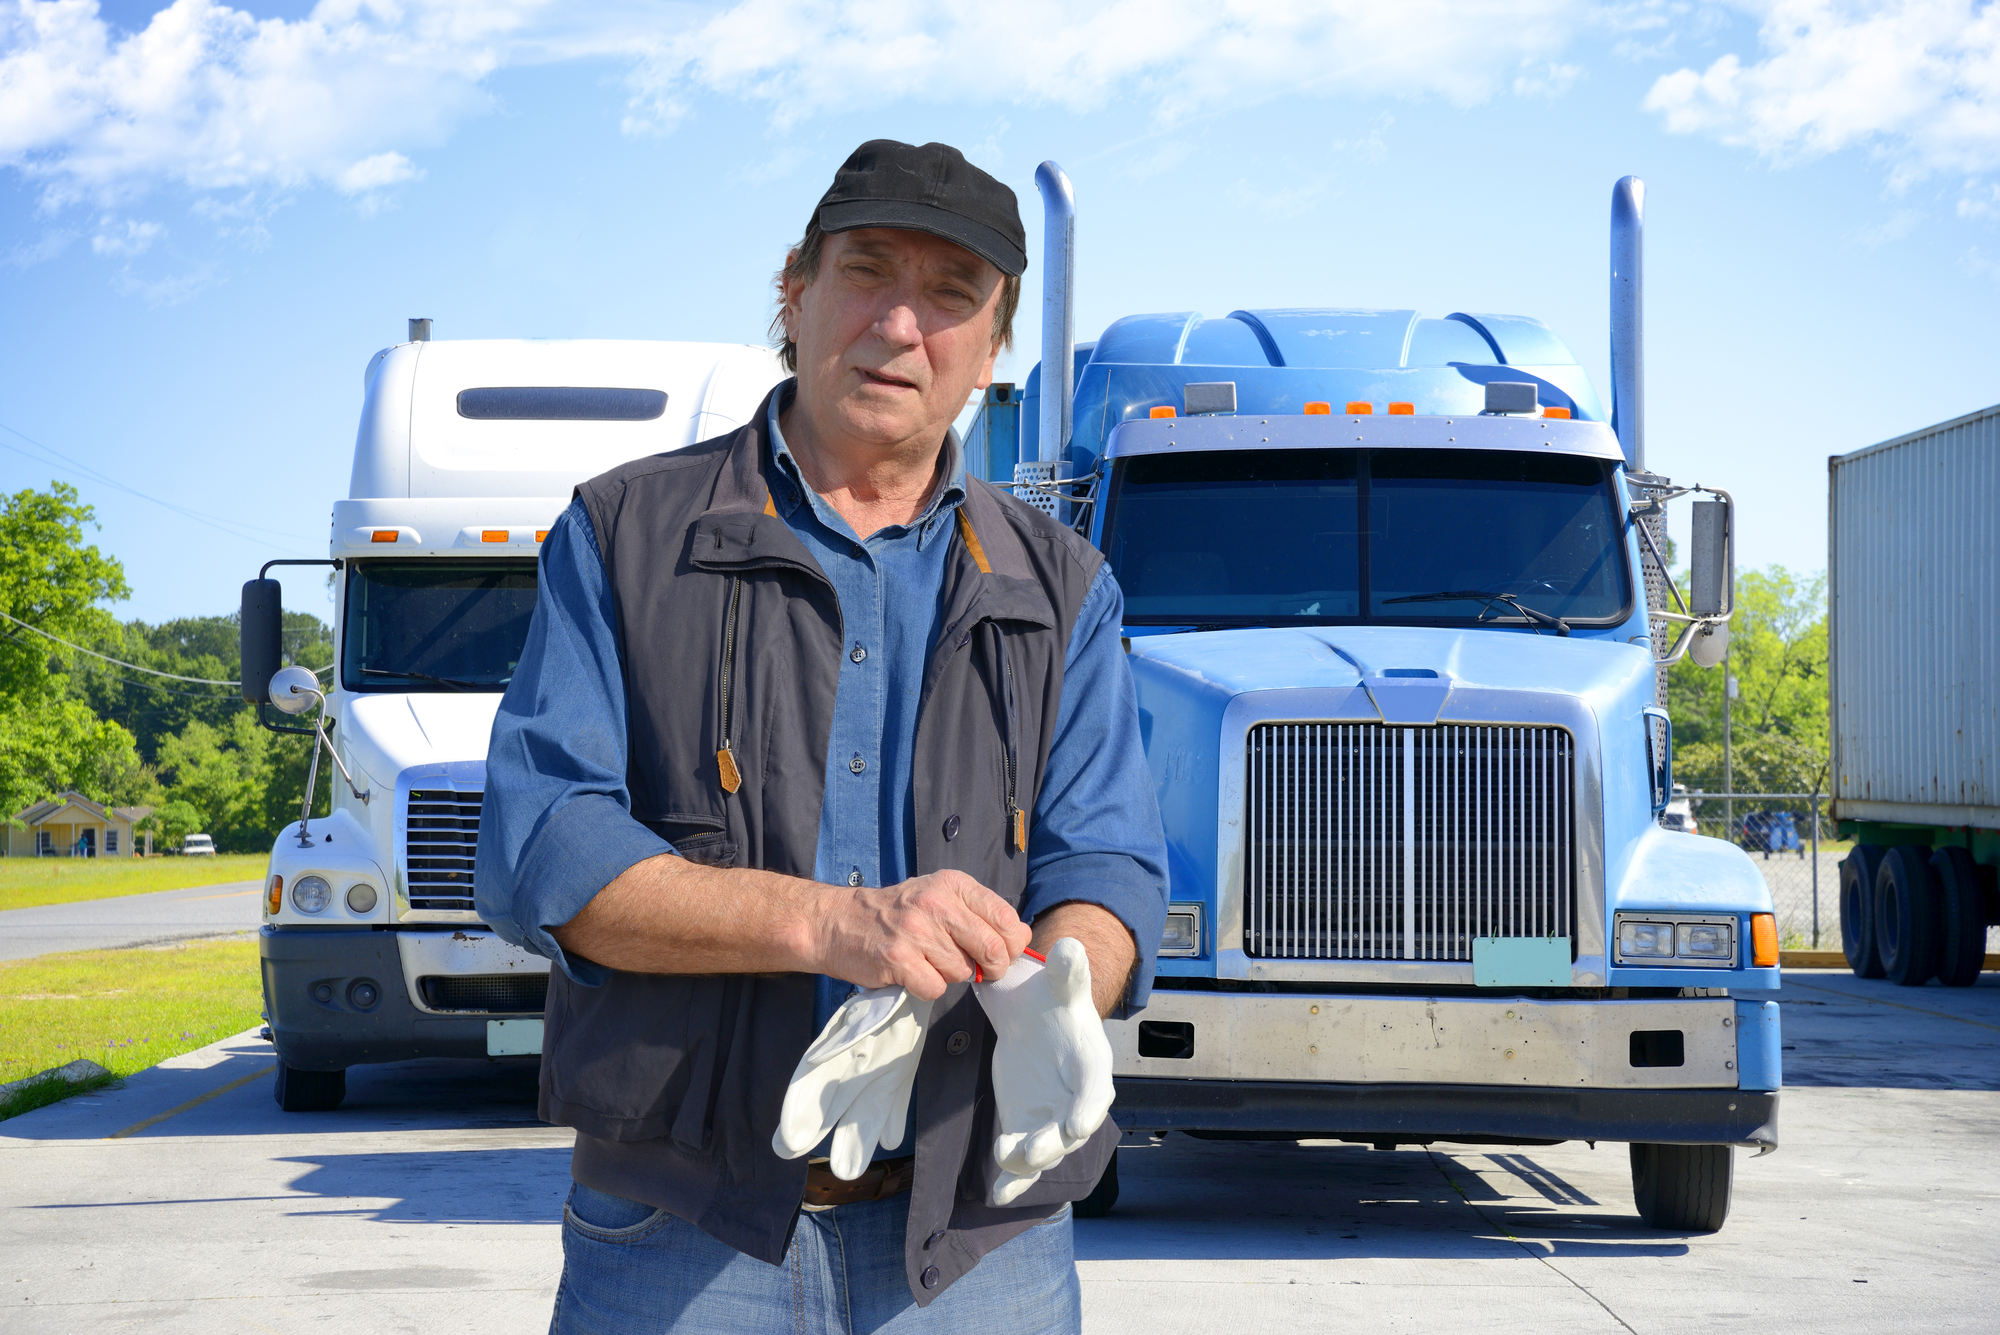 A truck driver standing in front of two semi trucks